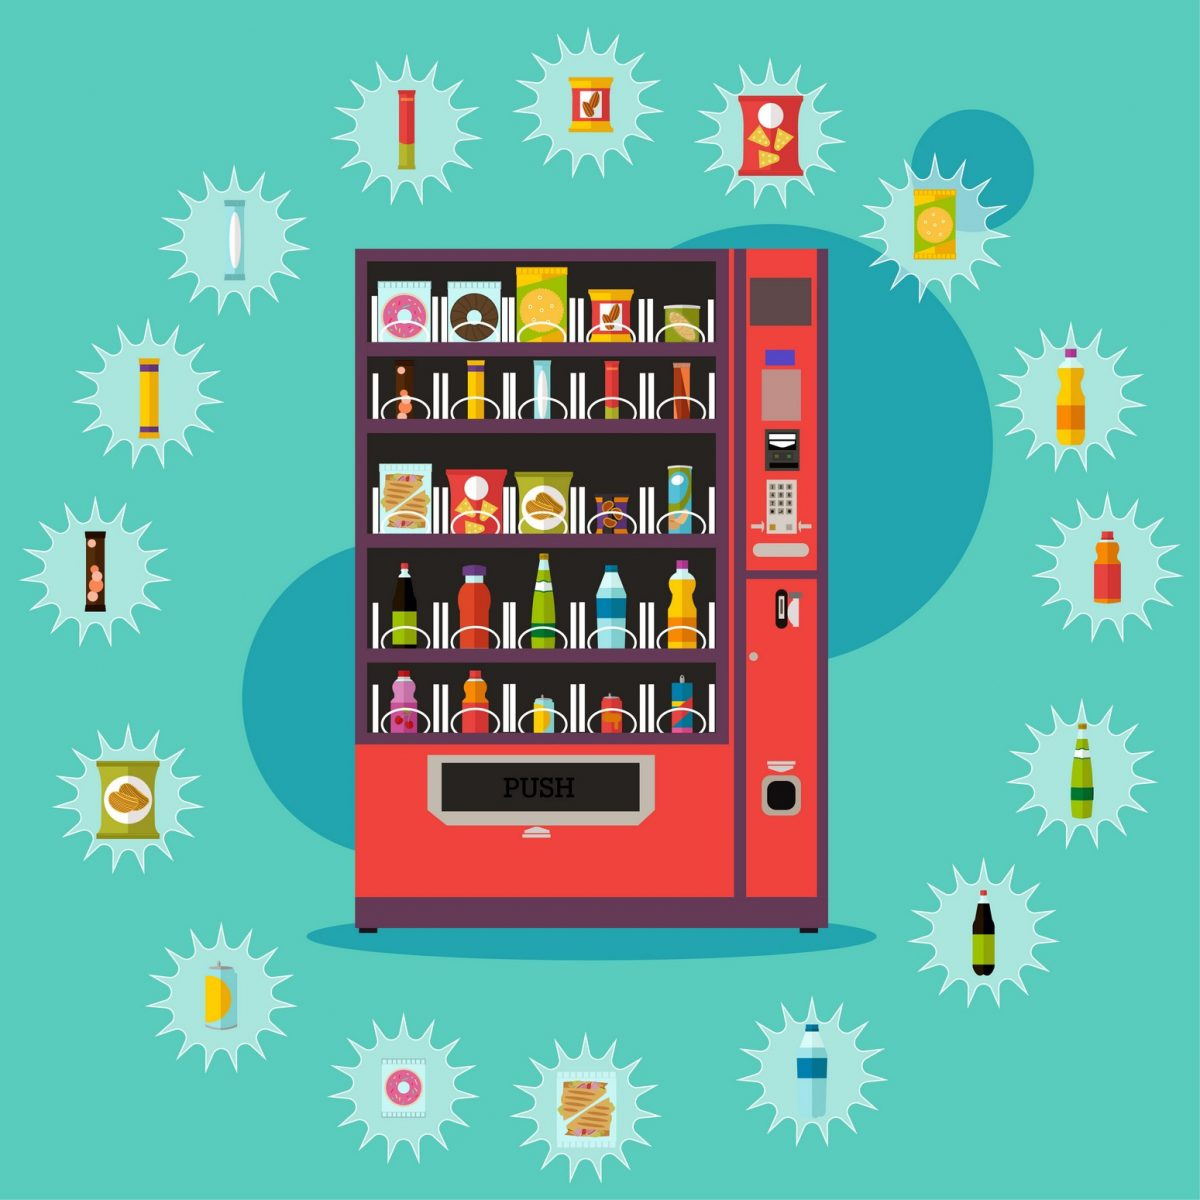 Dallas Fort Worth Employee Perks | Refreshing Drink | Snack Vending | Refreshment Services